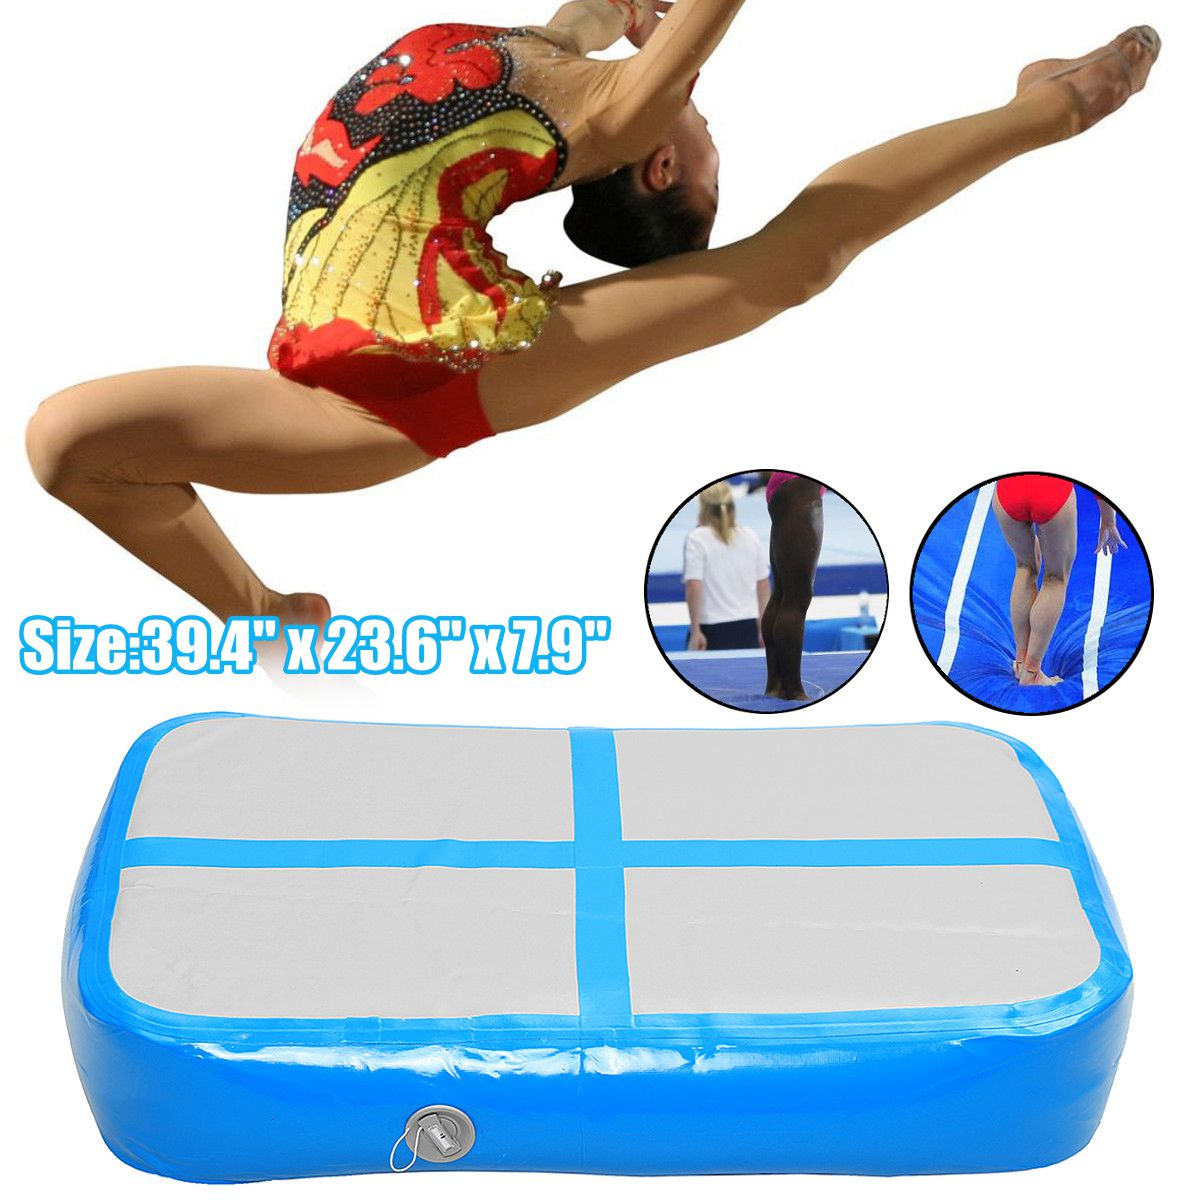 Air Track Floor Home Inflatable Gymnastics Training Tumbling Mat GYM for Kids inflatable zorb ball race track pvc go kart racing track for sporting party